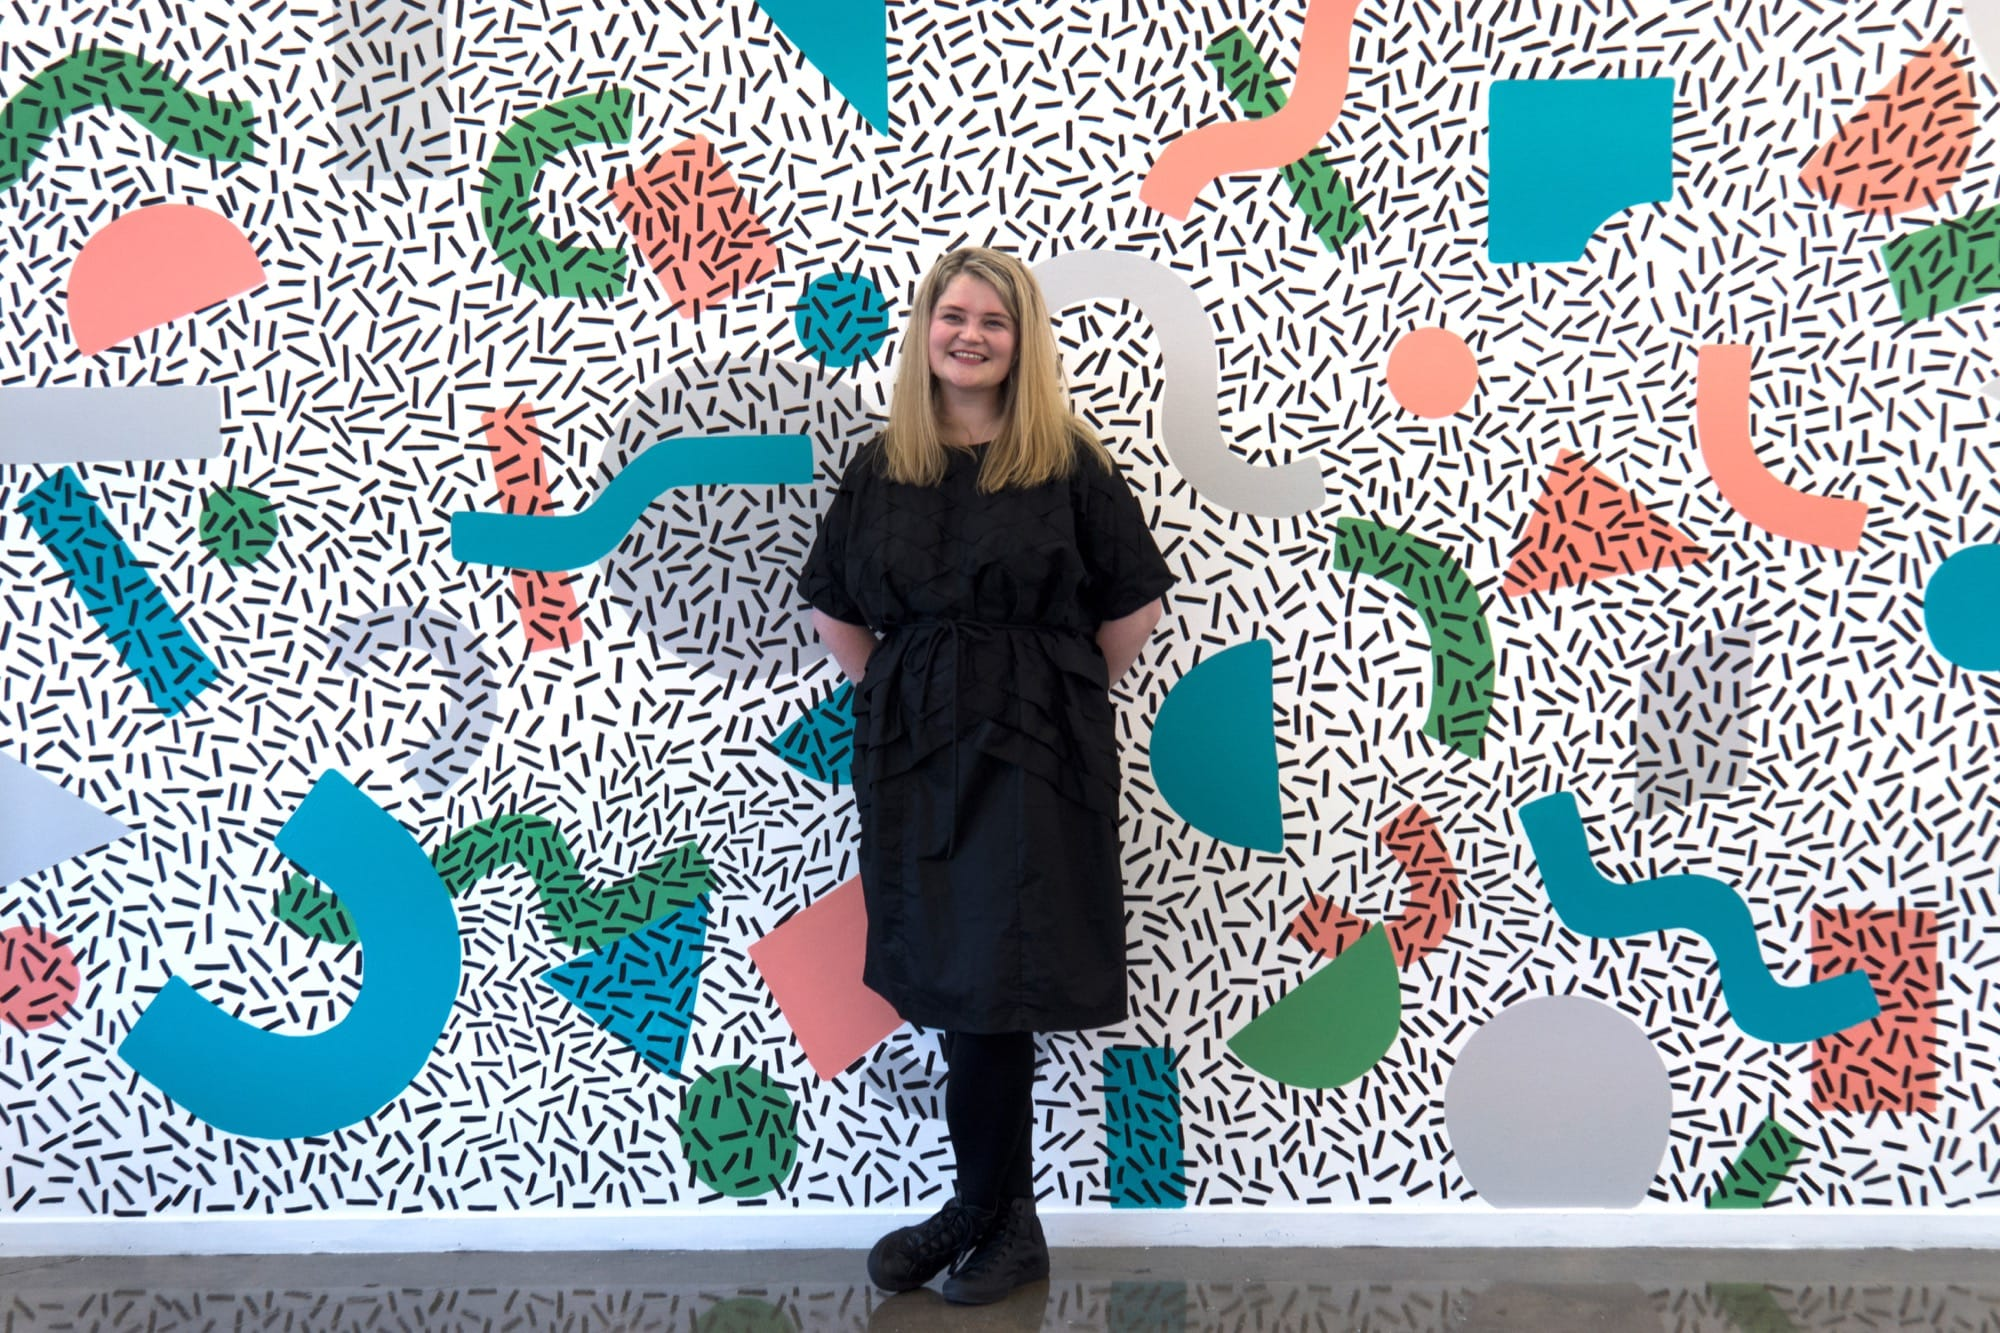 Alice Alva and one of her wall works